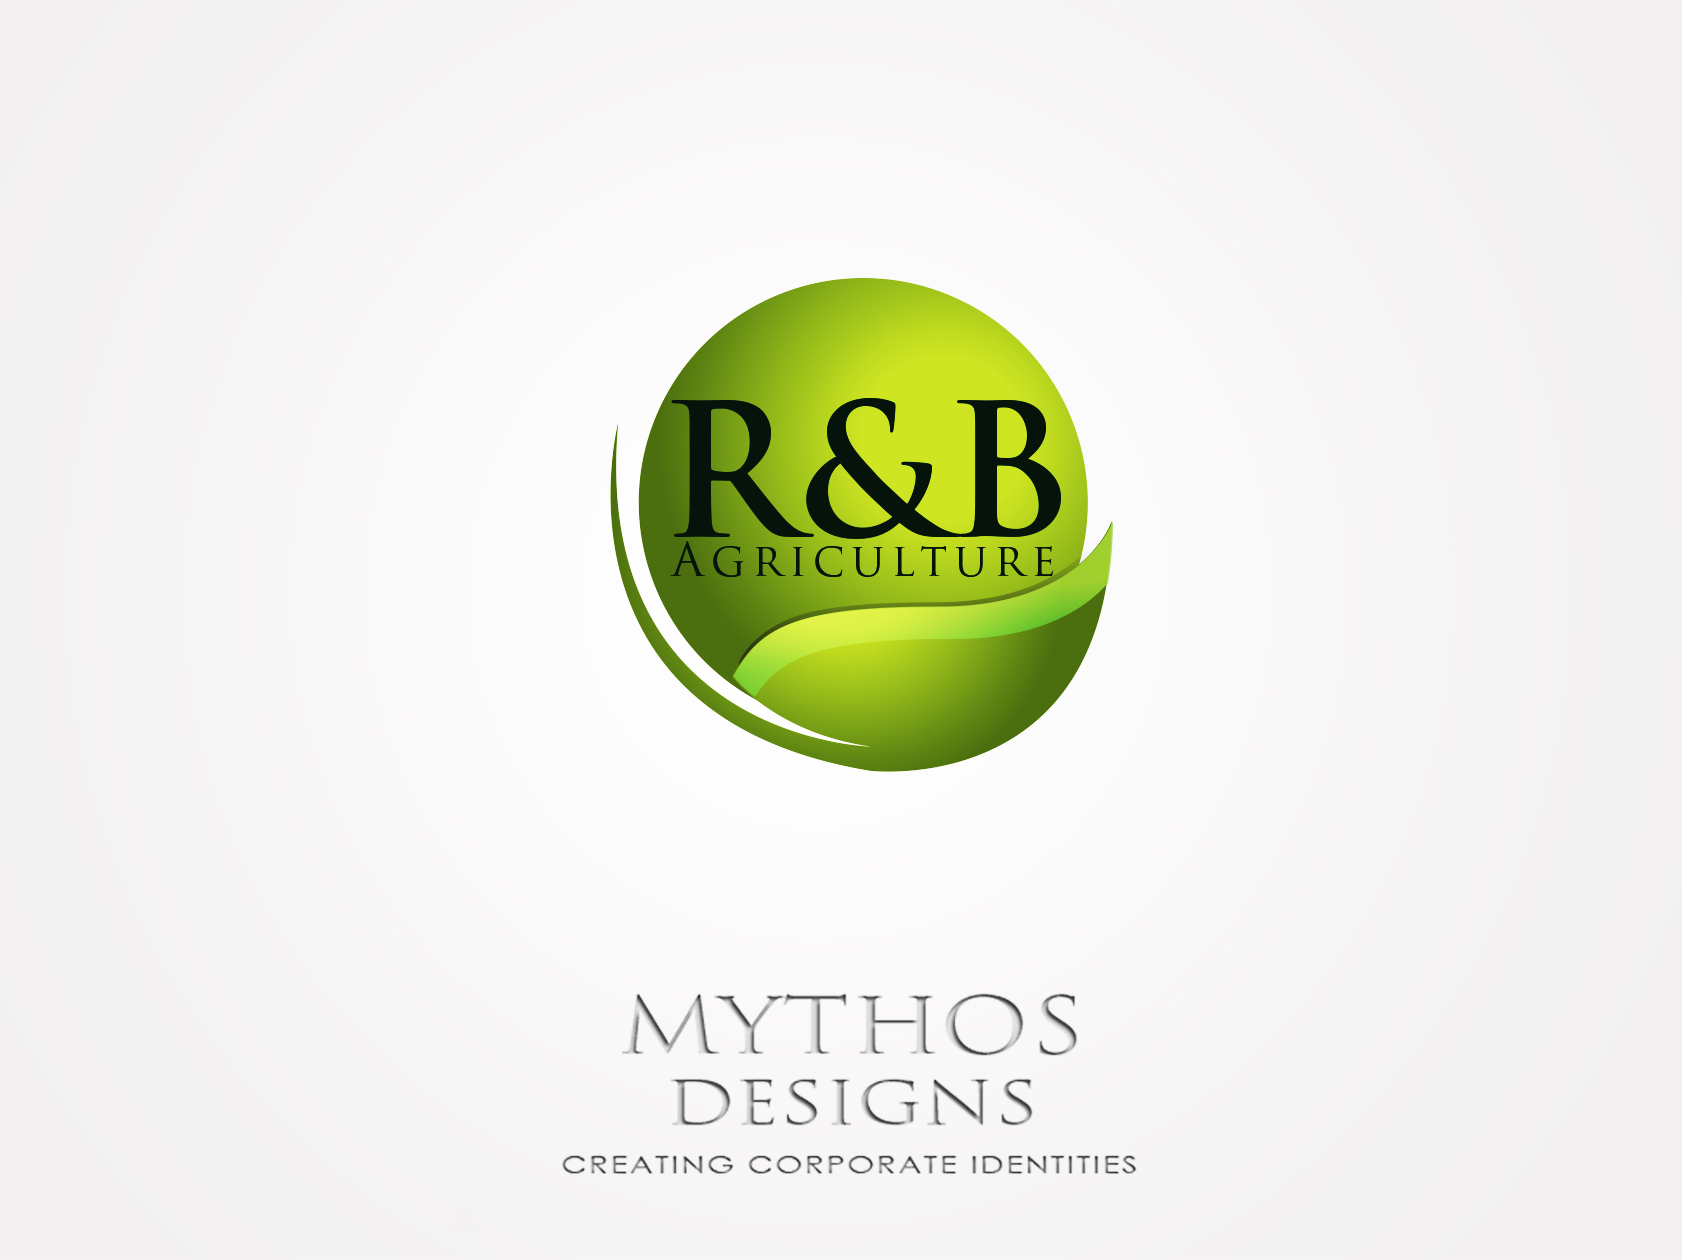 Logo Design by Mythos Designs - Entry No. 103 in the Logo Design Contest Captivating Logo Design for R & B Agriculture.